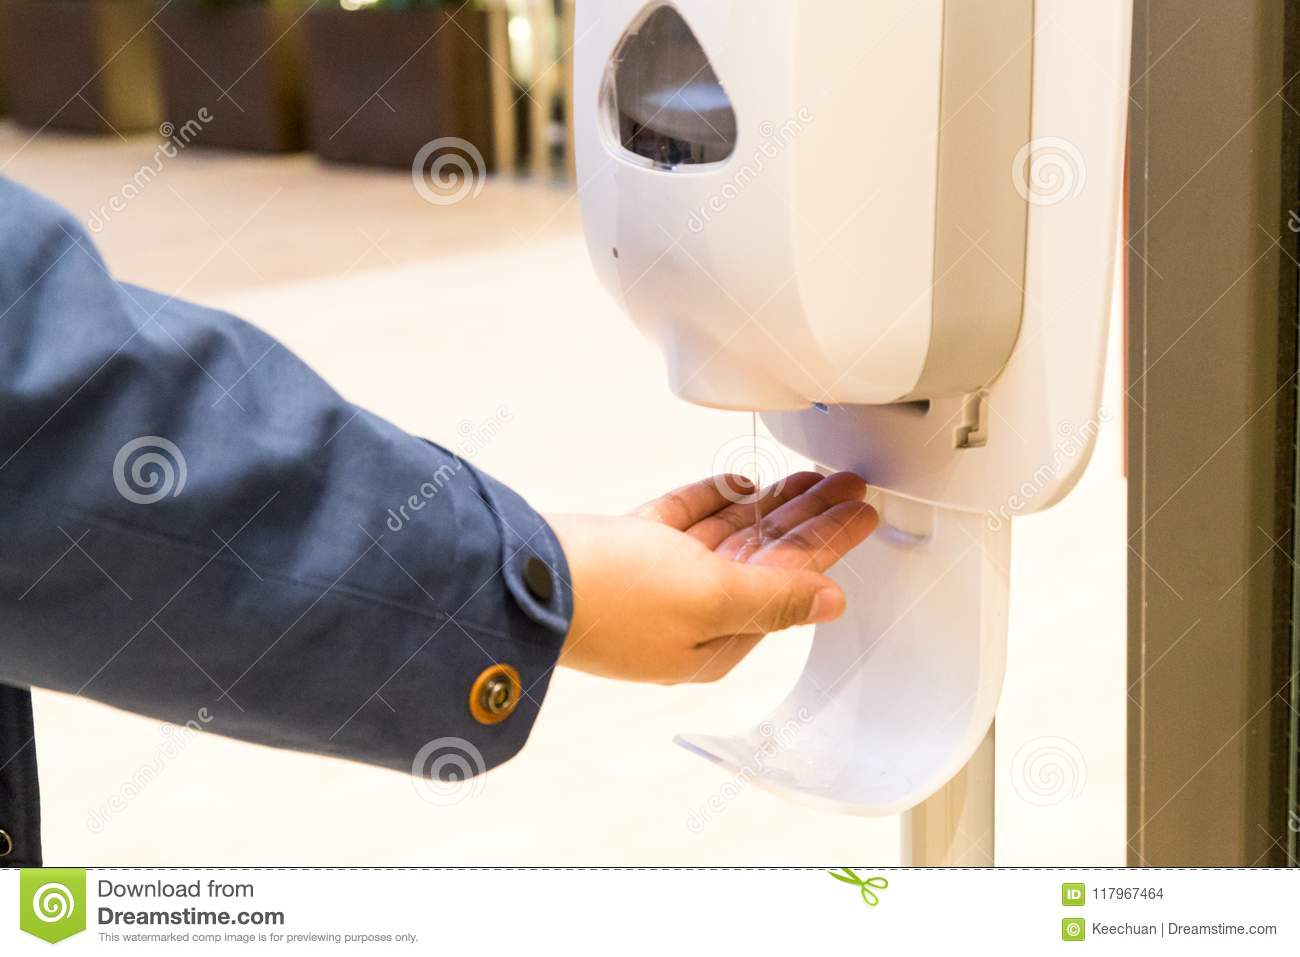 Person cleaning hand with anti-bacterial diinfectant sanitizer i